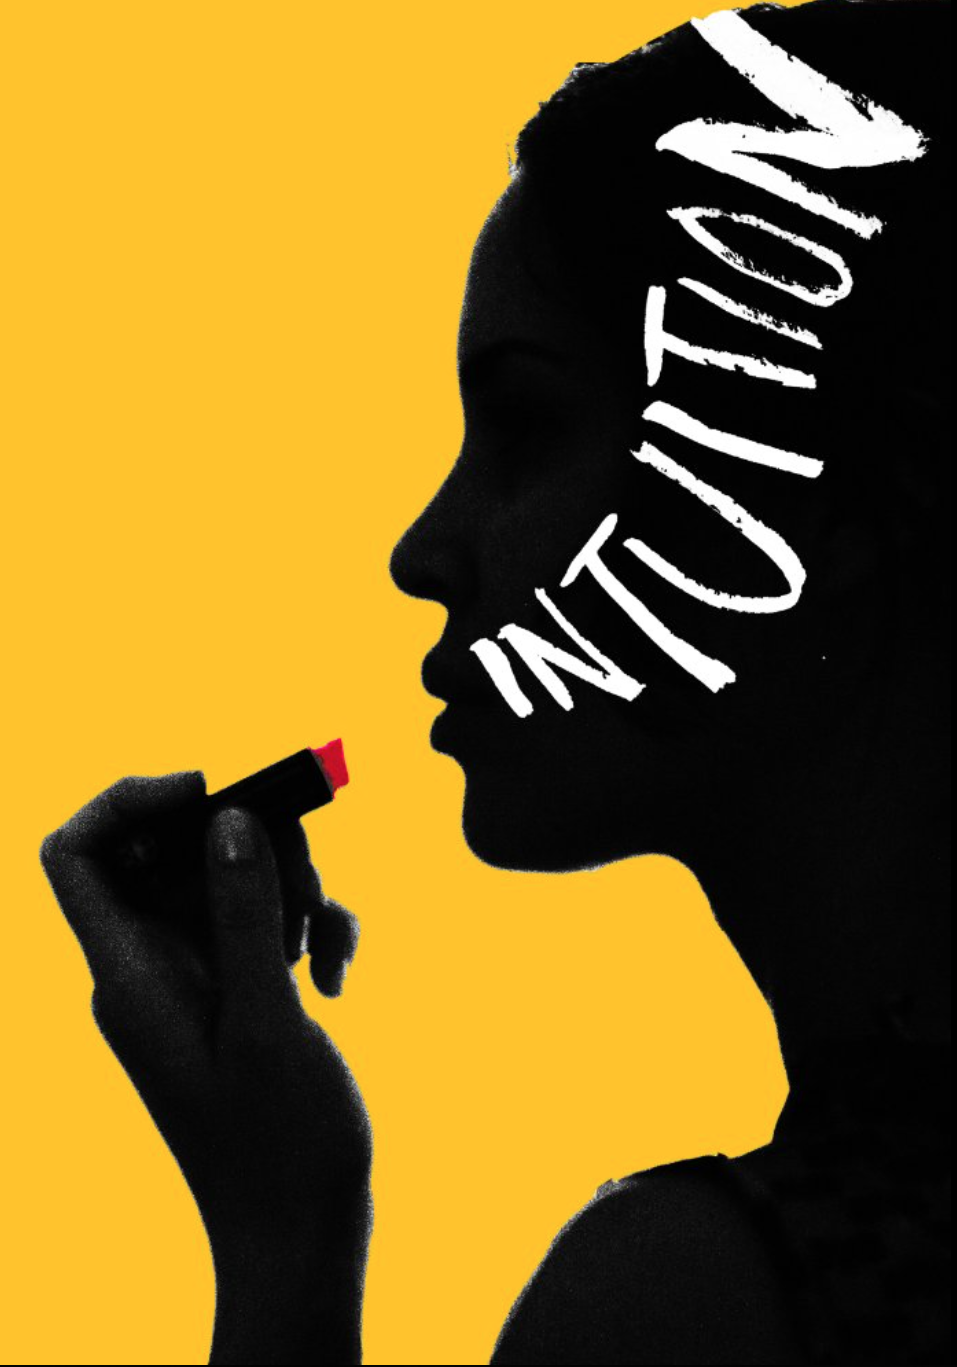 INTUITION - Directed by Danielle Lurie Music by Jessica Weiss and Shruti Kumar